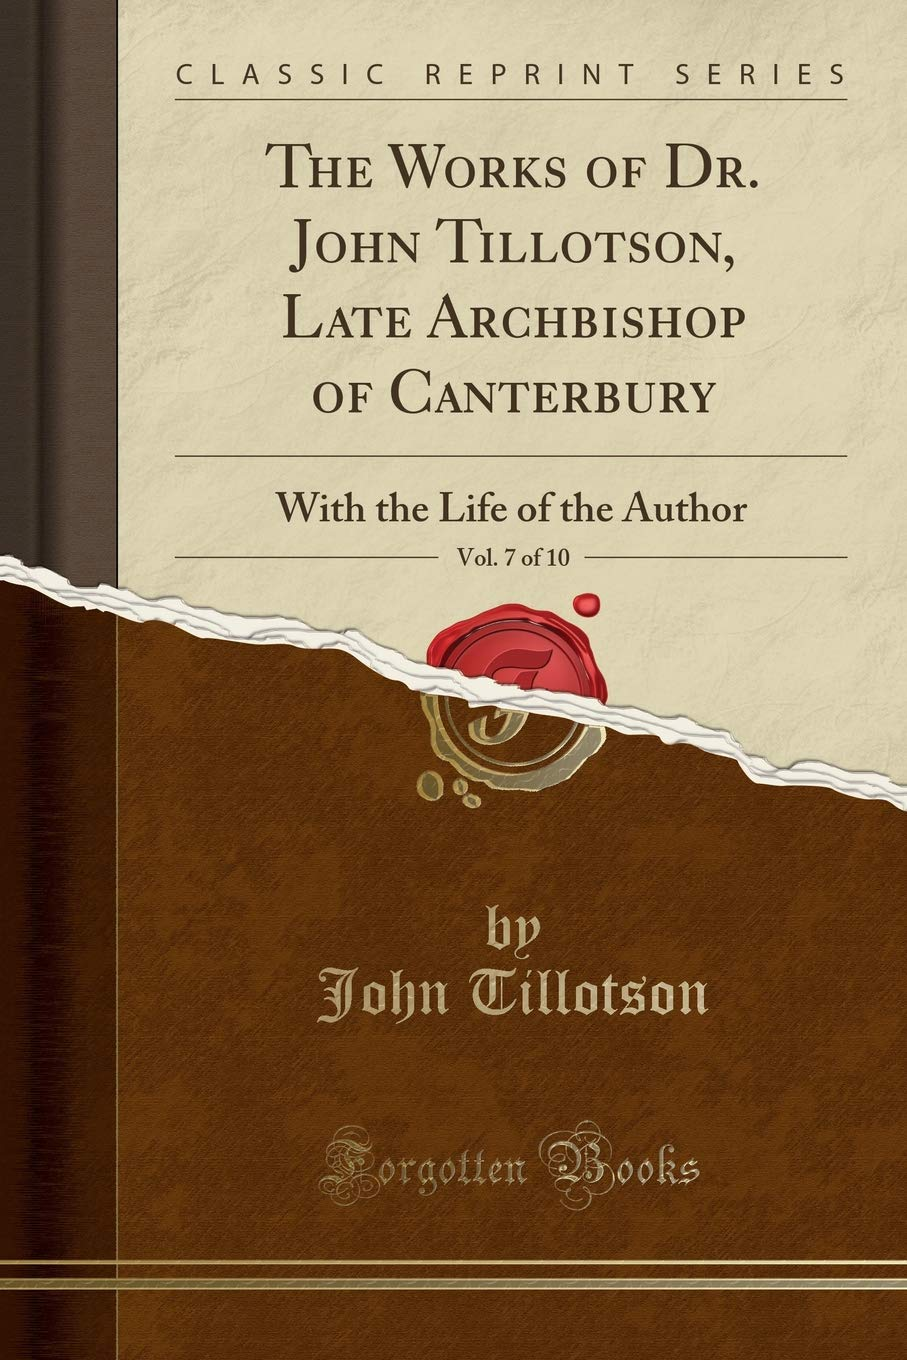 Download The Works of Dr. John Tillotson, Late Archbishop of Canterbury, Vol. 7 of 10: With the Life of the Author (Classic Reprint) pdf